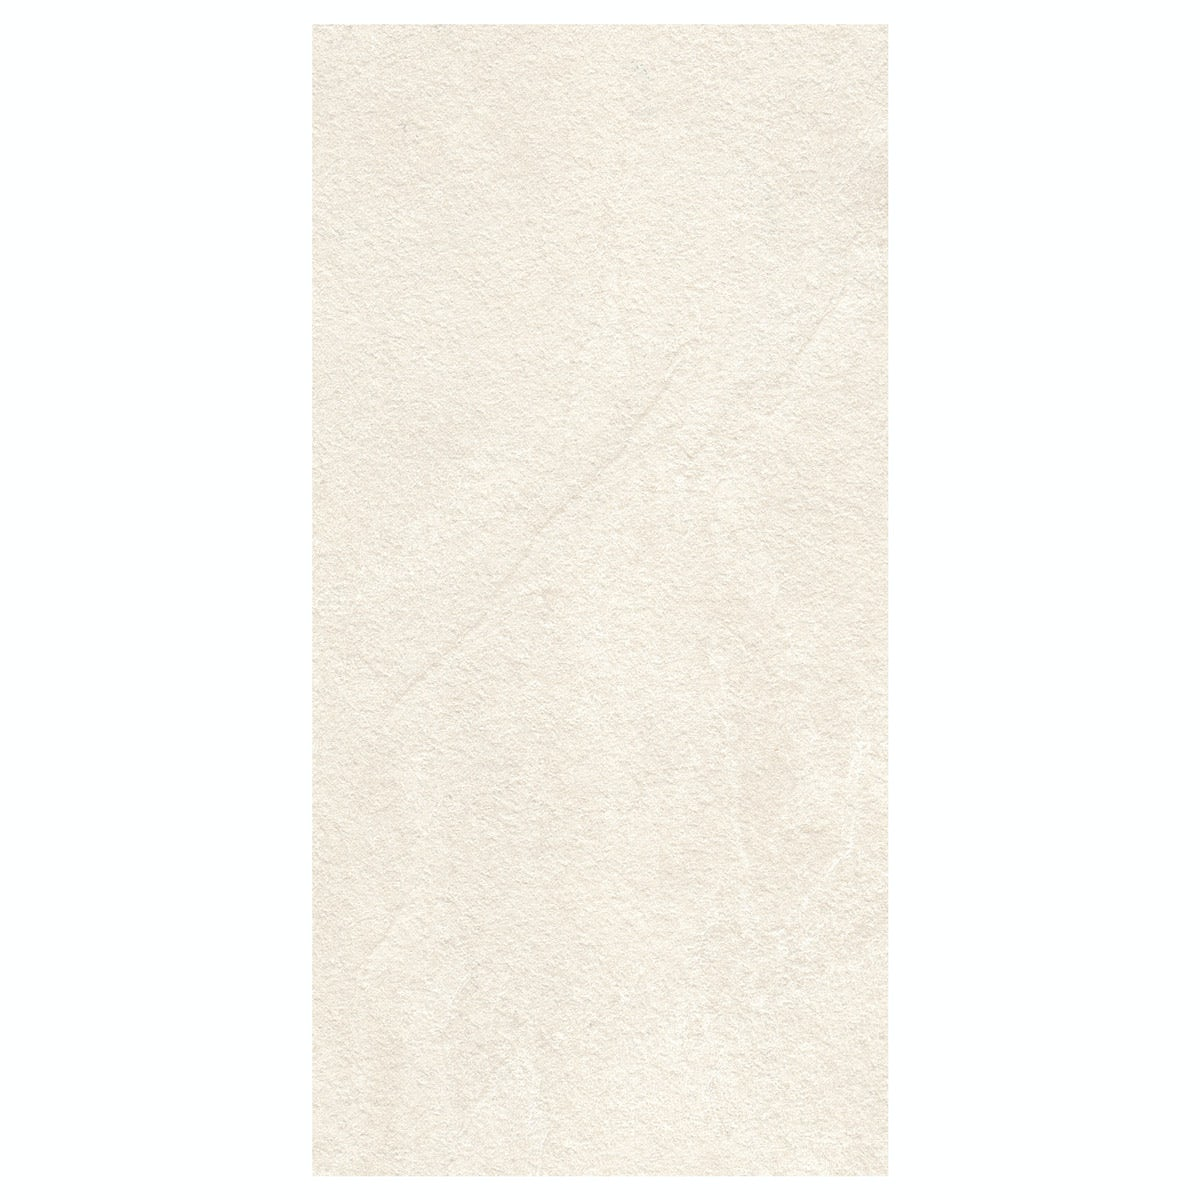 Mode Nouvel white claystone laminate worktop 1.5m